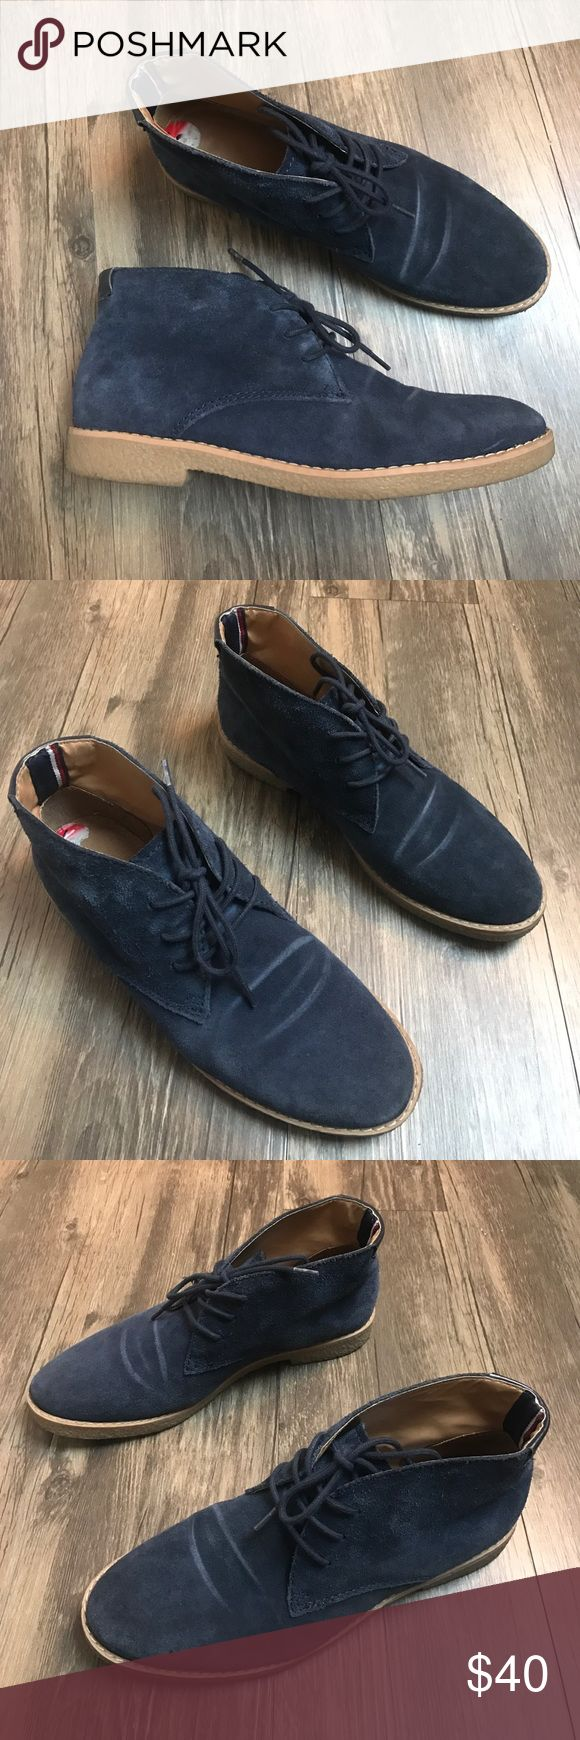 Tommy Hilfiger Blue Suede Leather Chukka Boots 6M Tommy Hilfiger size 6 M blue suede leather chukka crepe sole ankle boots. Please note creasing across top of foot. Tommy Hilfiger Shoes Ankle Boots & Booties